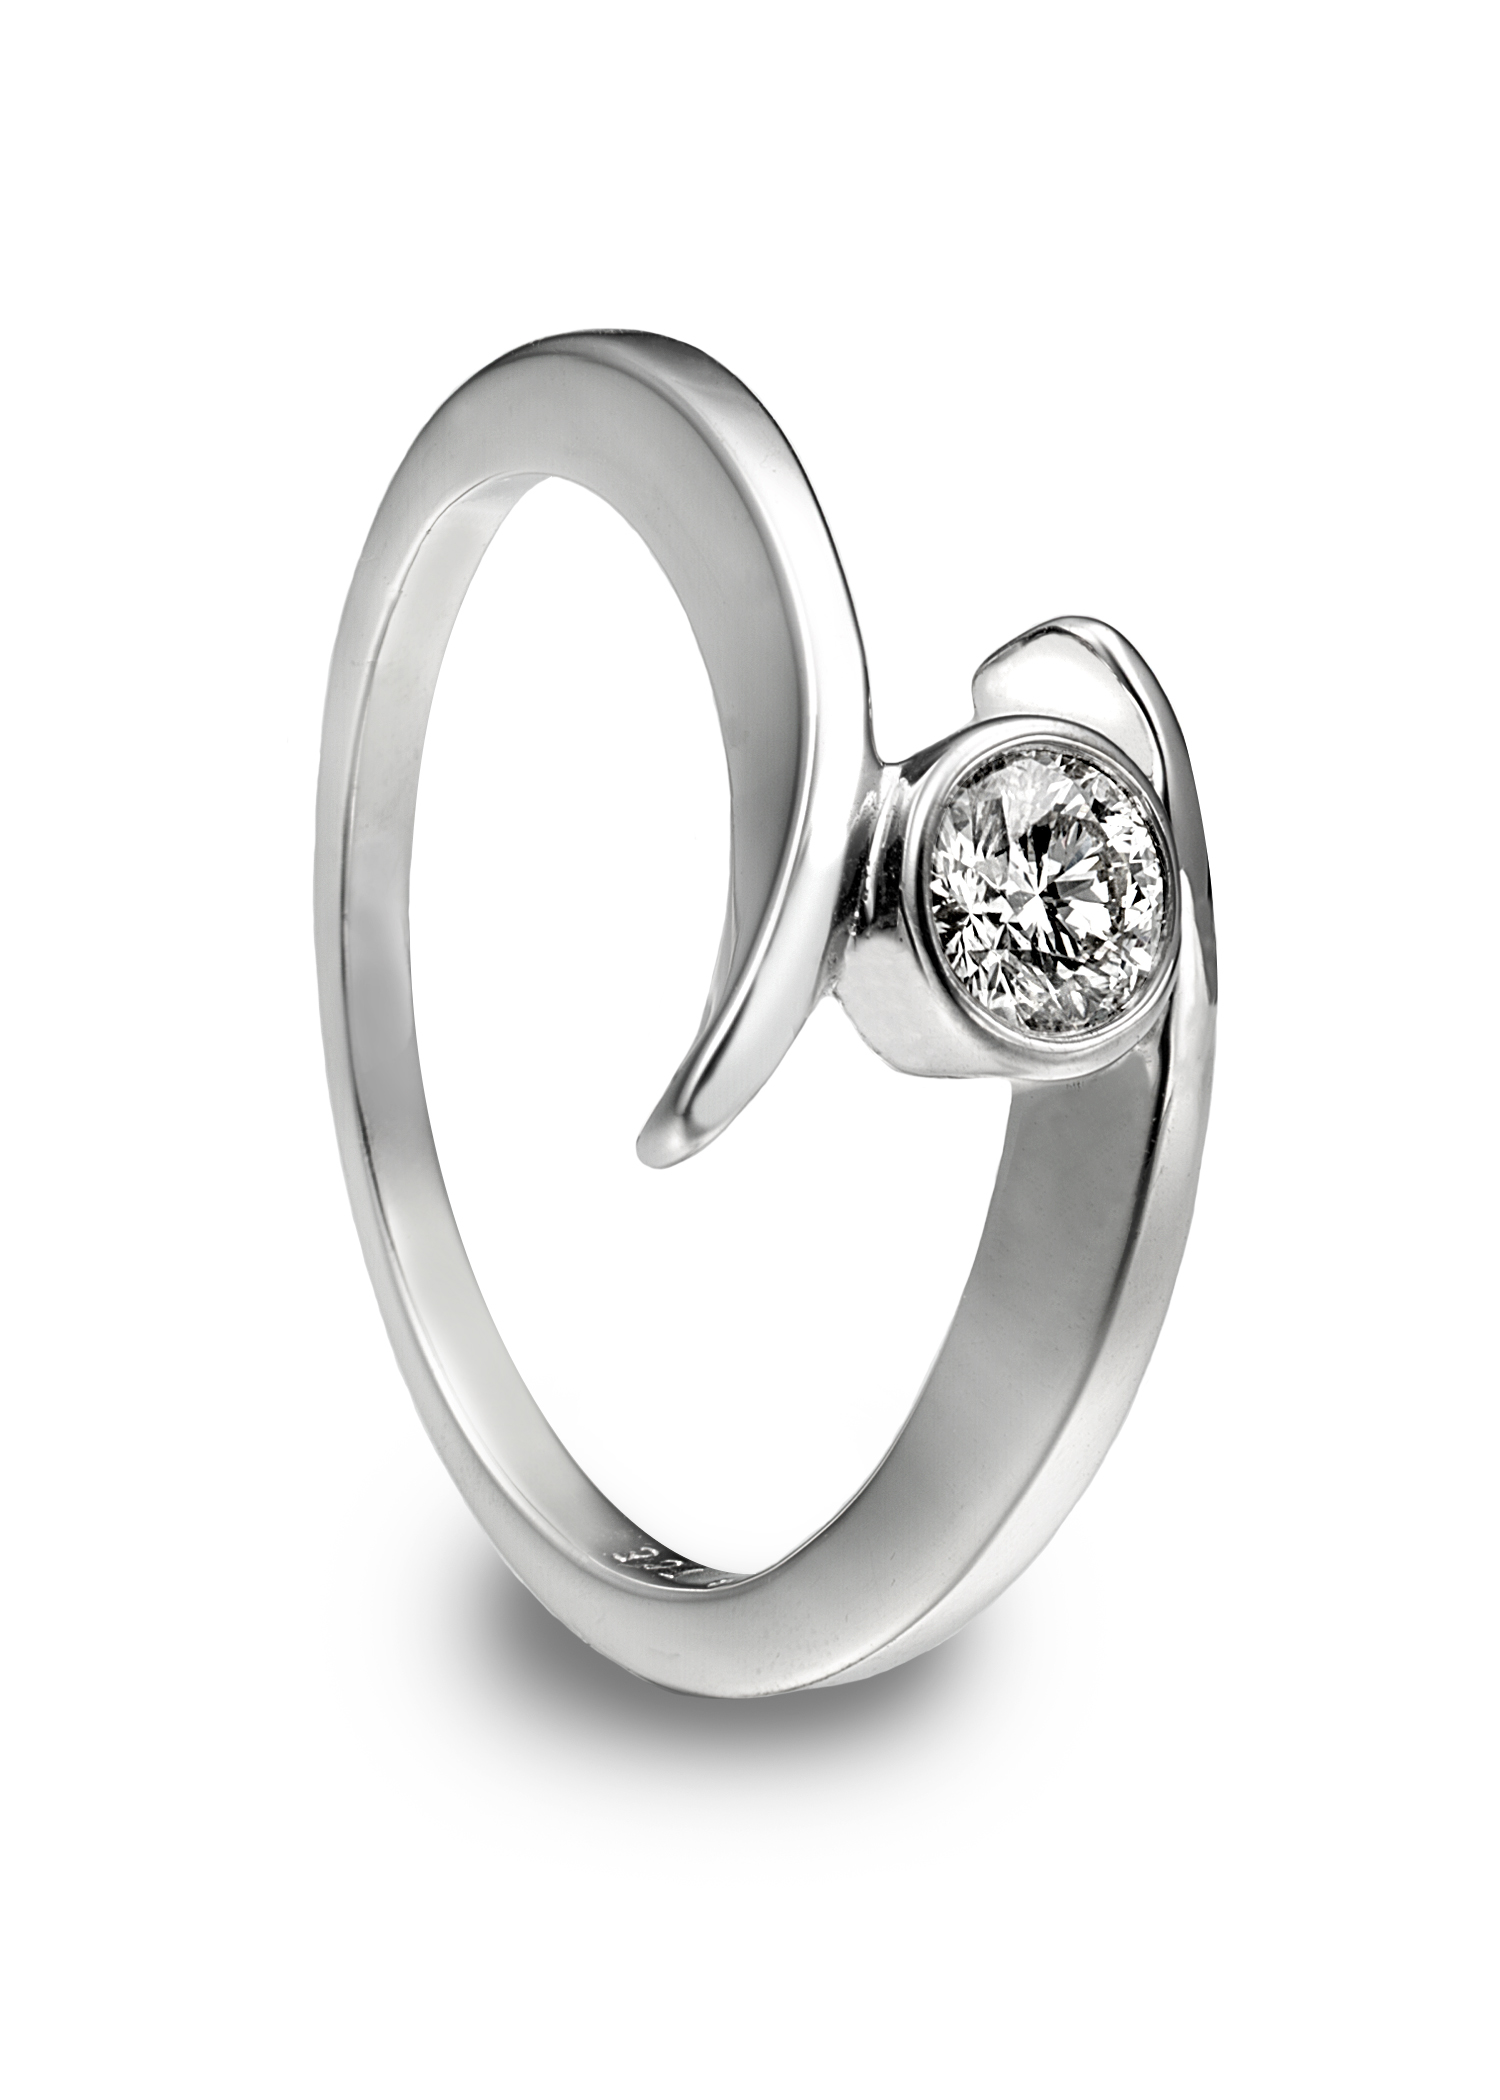 : wedding ring prices